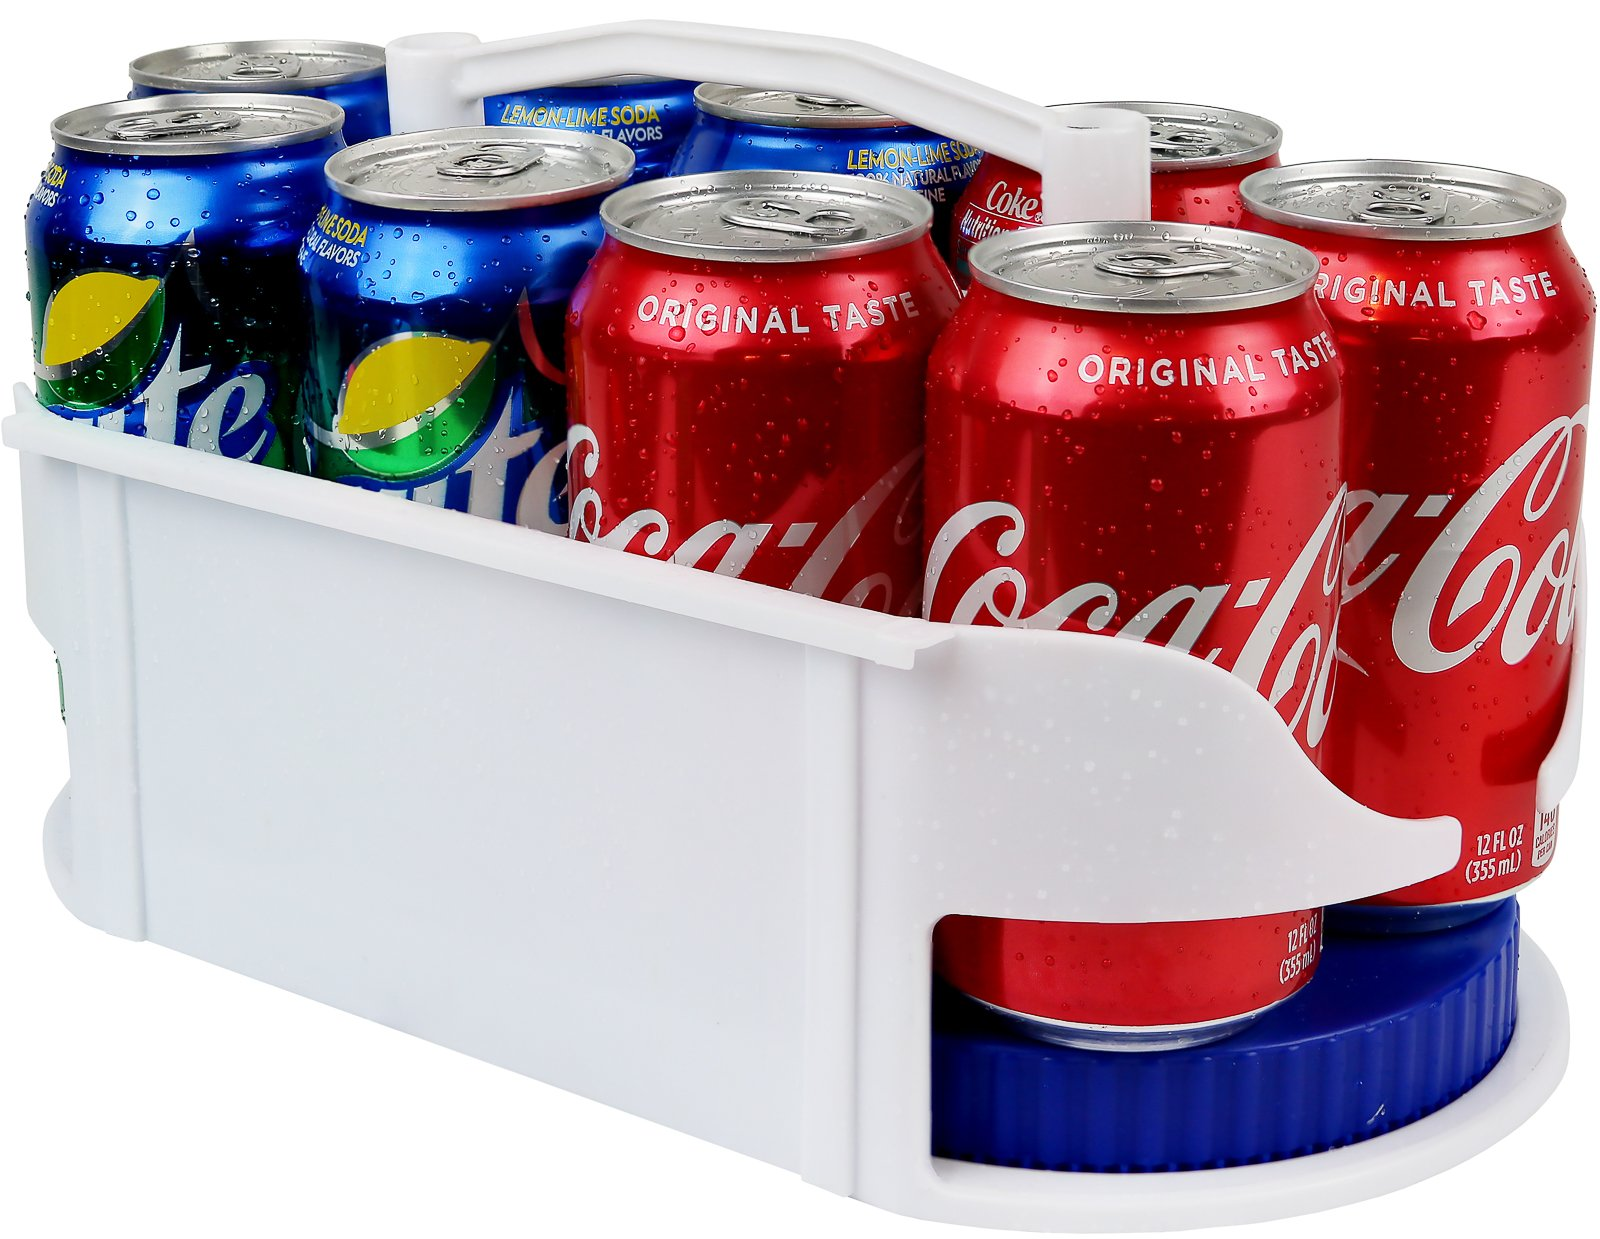 Galashield Soda Can Holder Dispenser and Organizer for Refrigerator and Cabinet